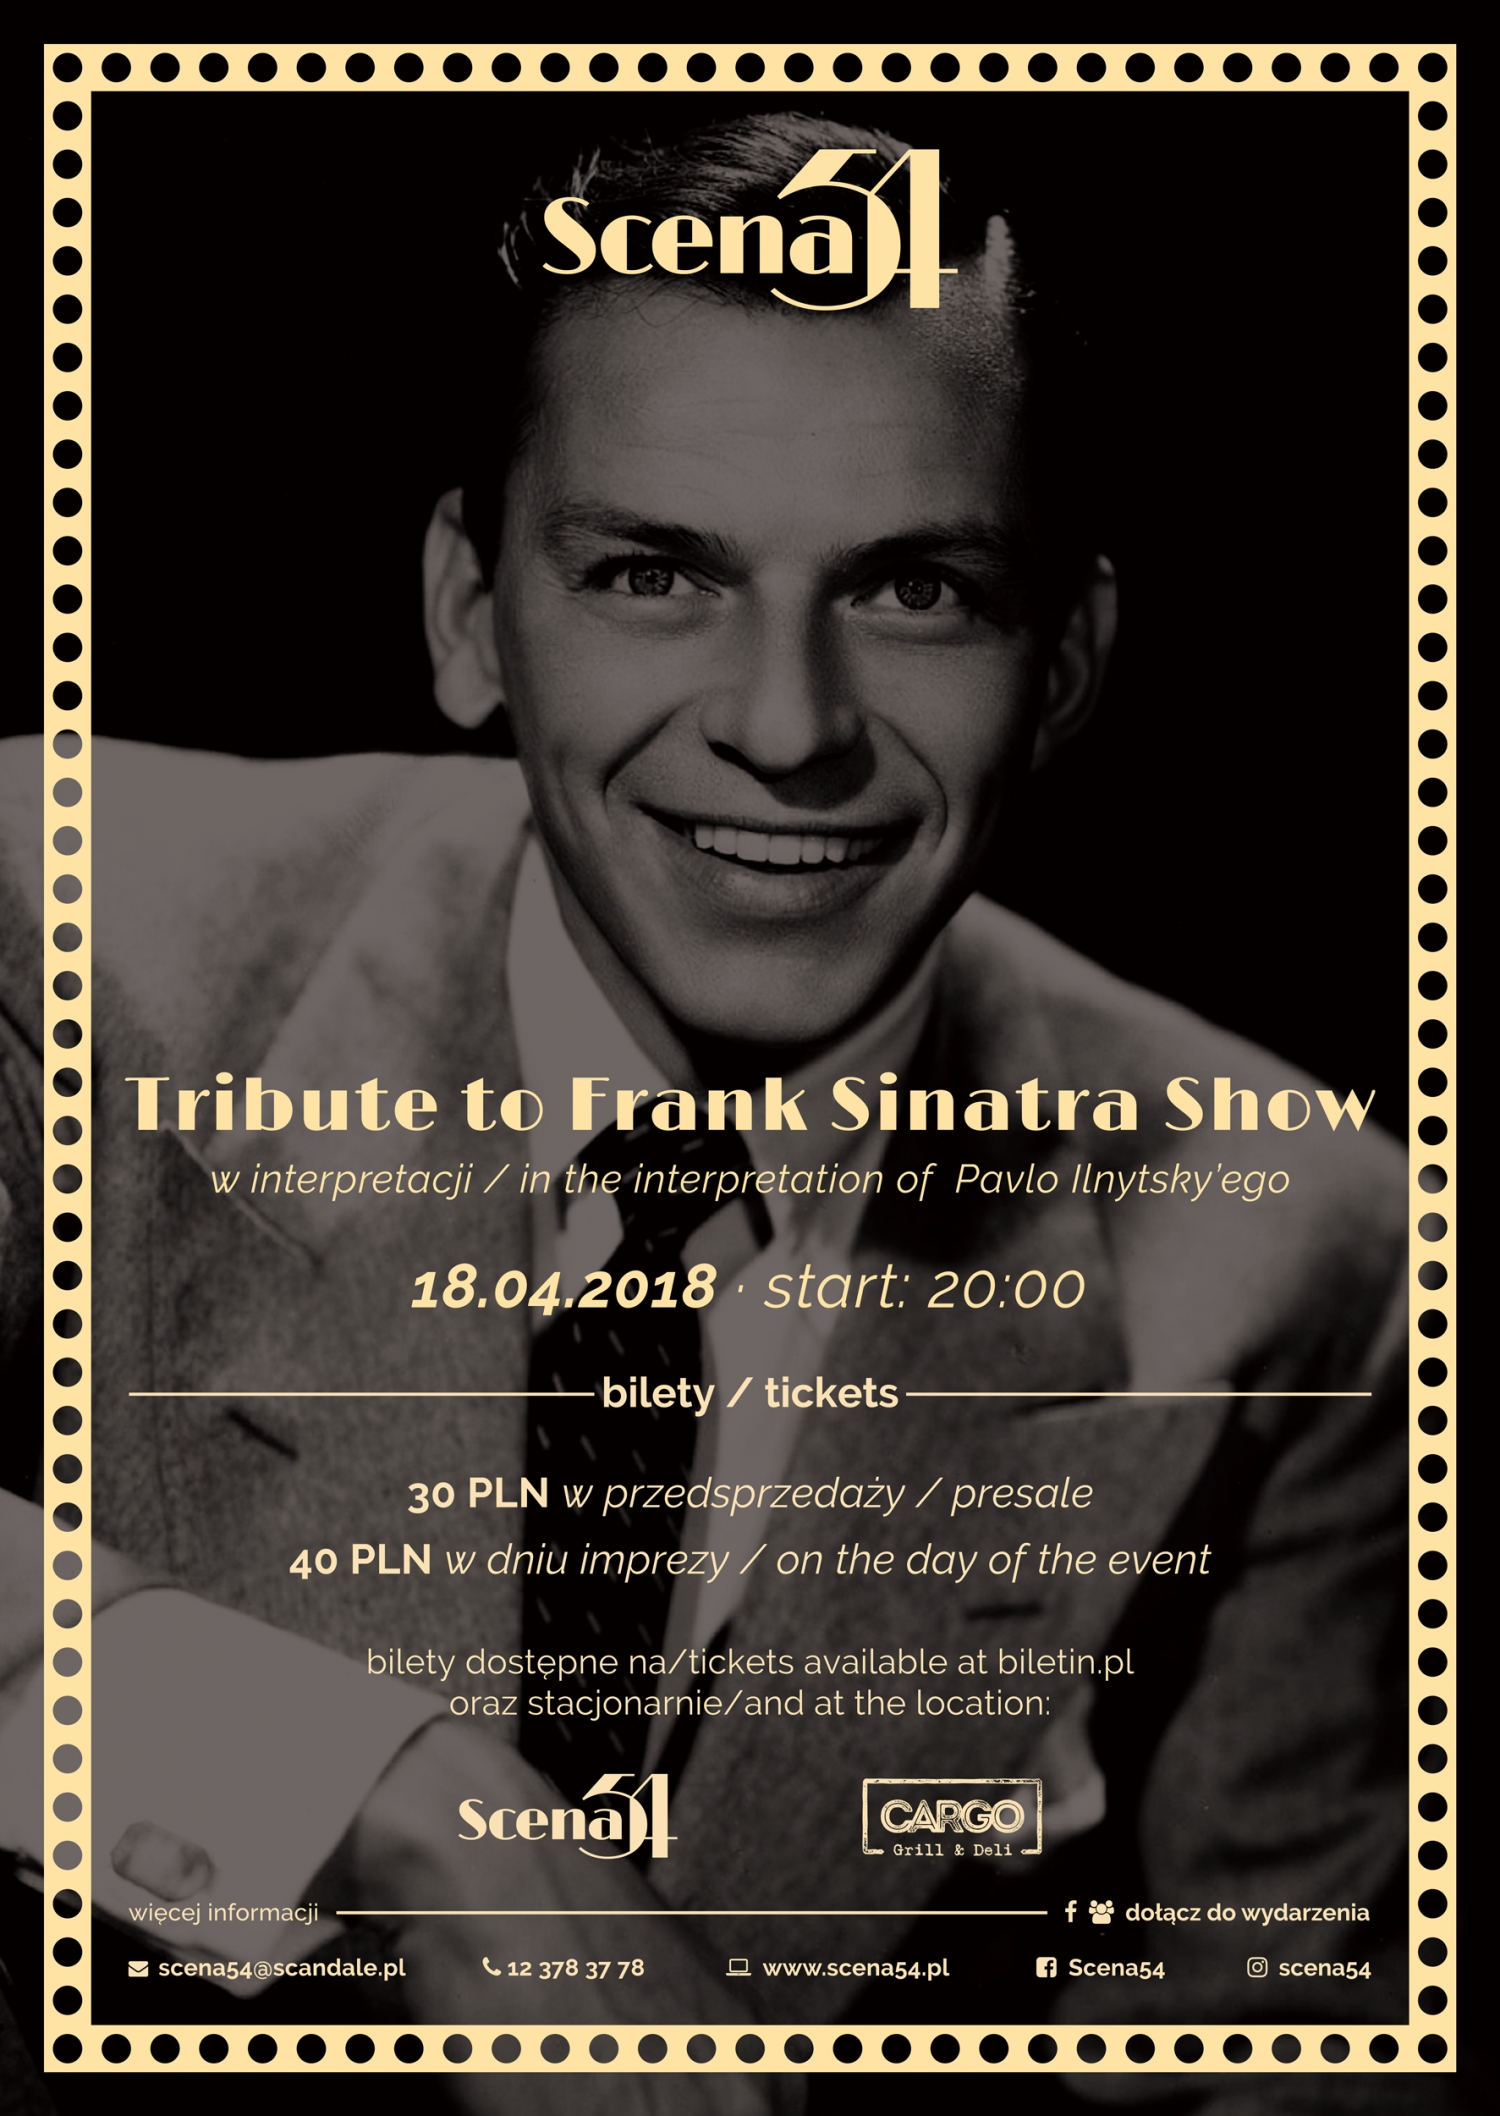 Tribute to Frank Sinatra Show